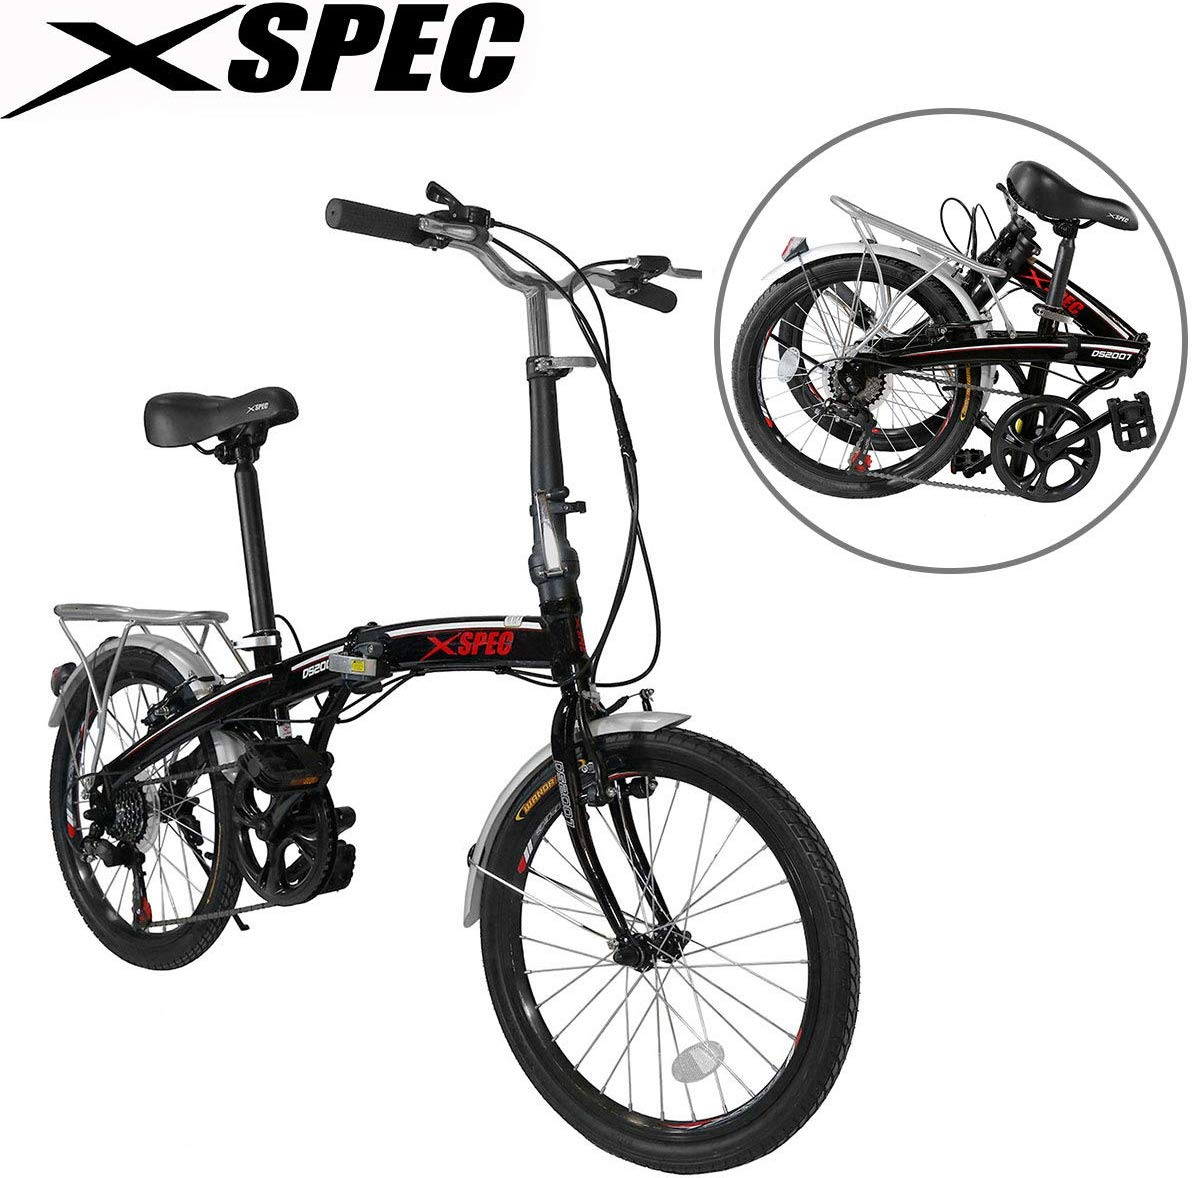 "Xspec 20"" 7 Speed City Folding Compact Bike Bicycle Urban Commuter"